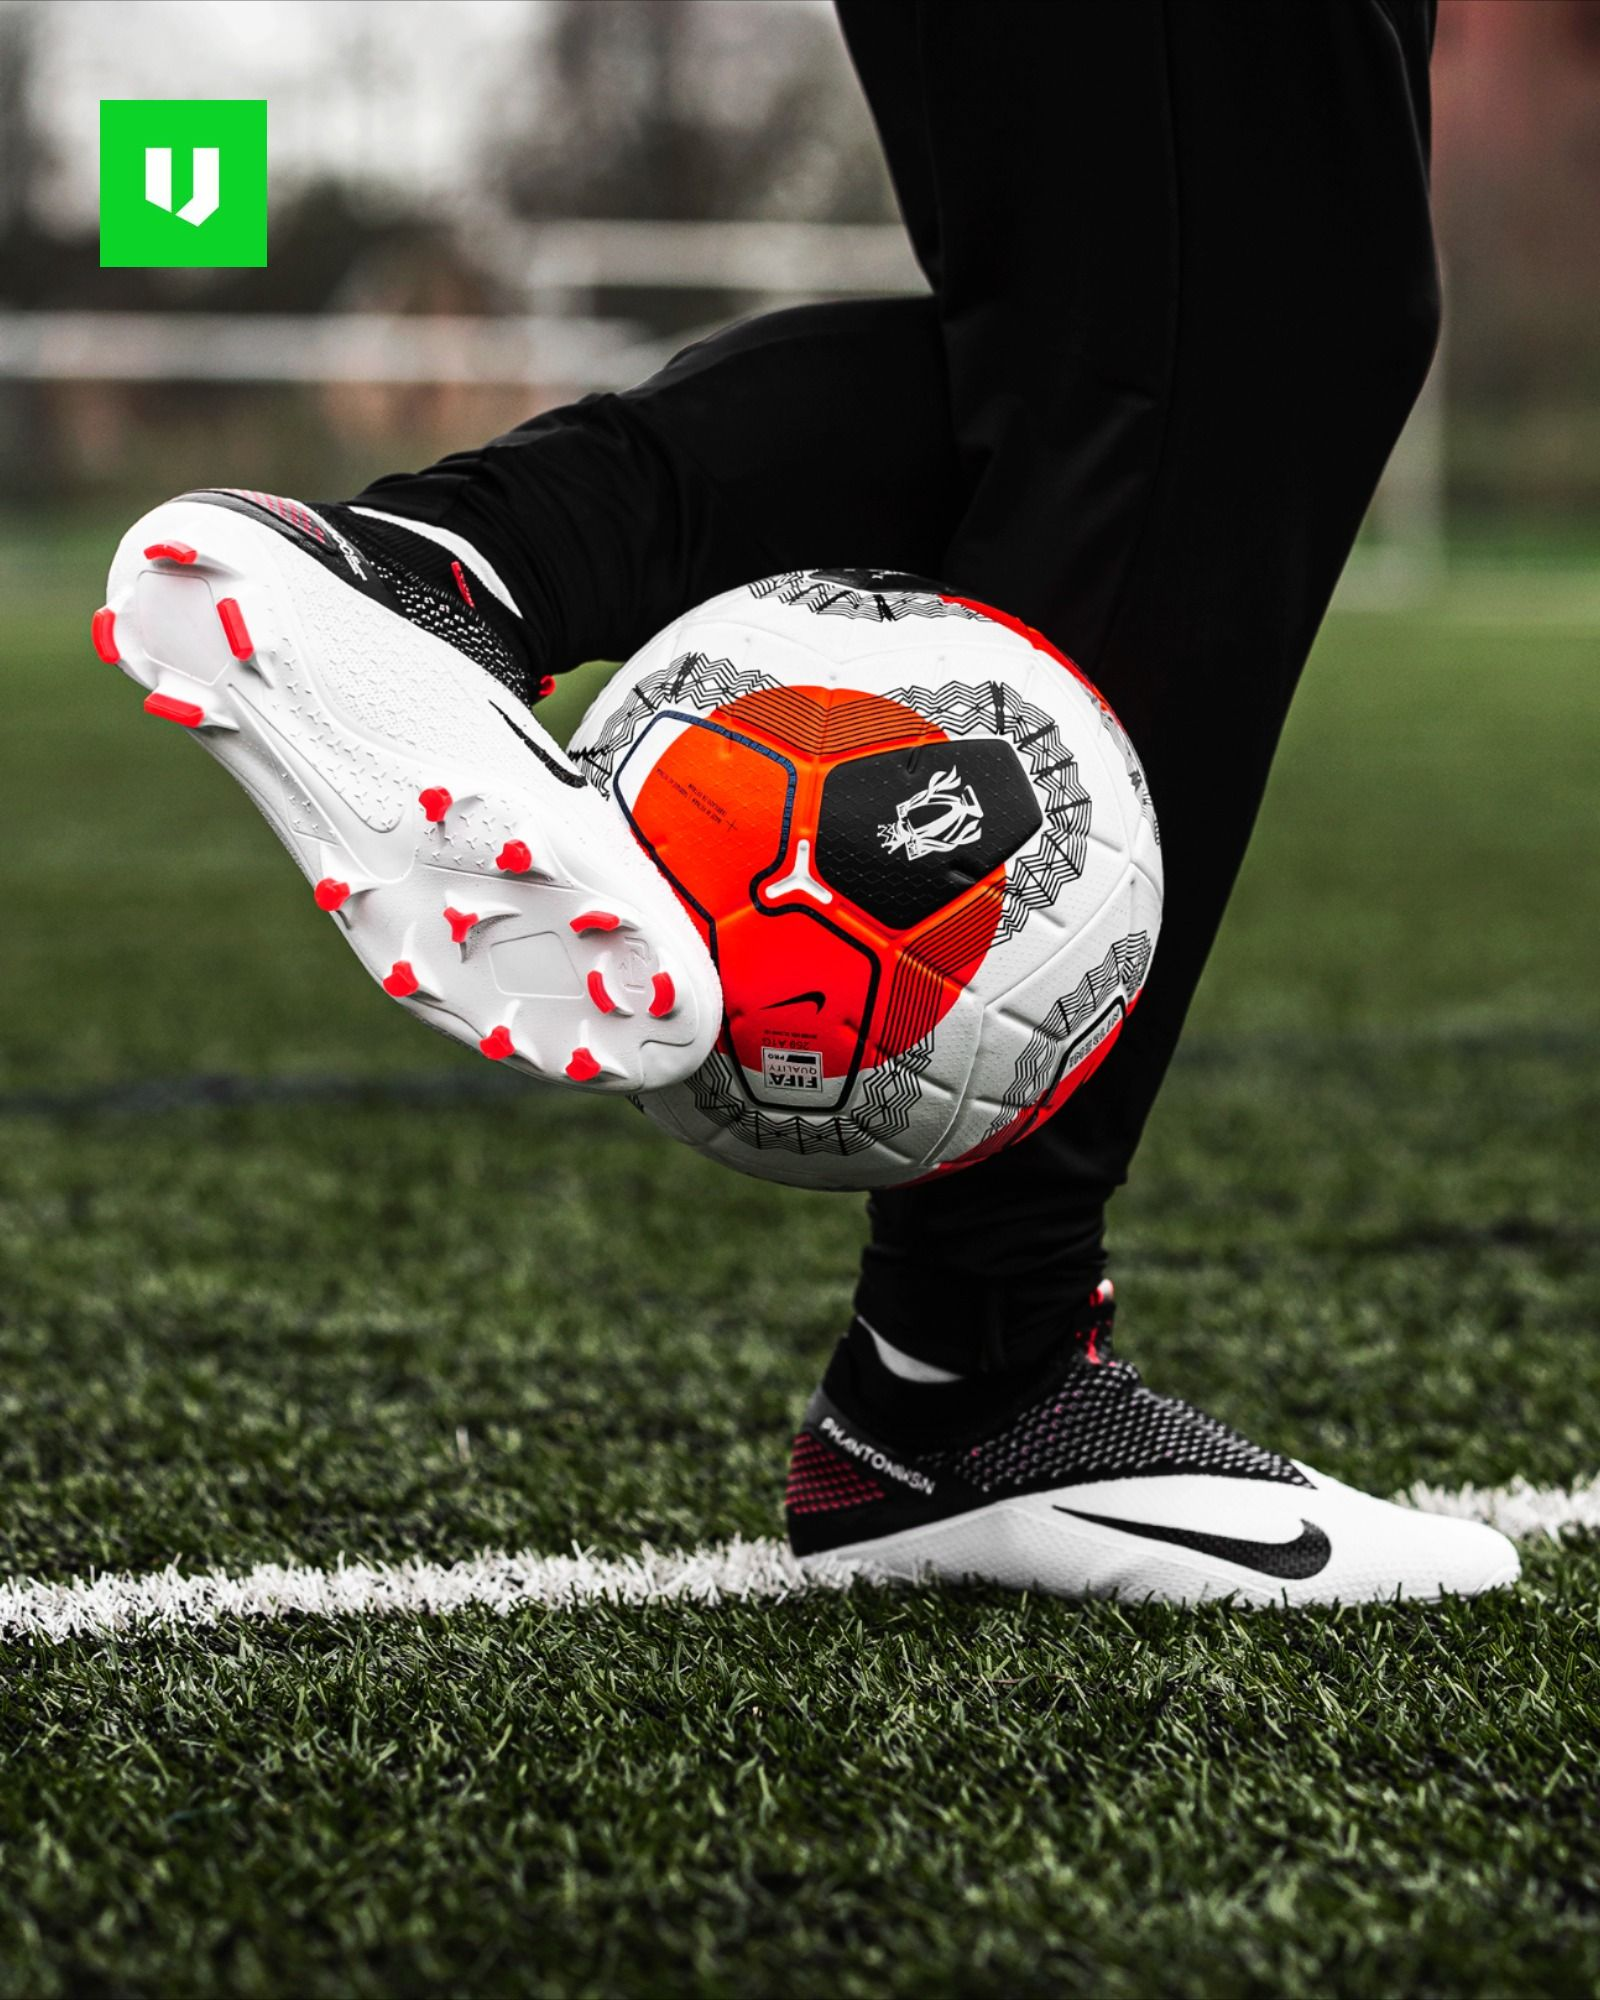 The New Player Inspired In 2020 Nike Football Boots Soccer Boots Soccer Shoes